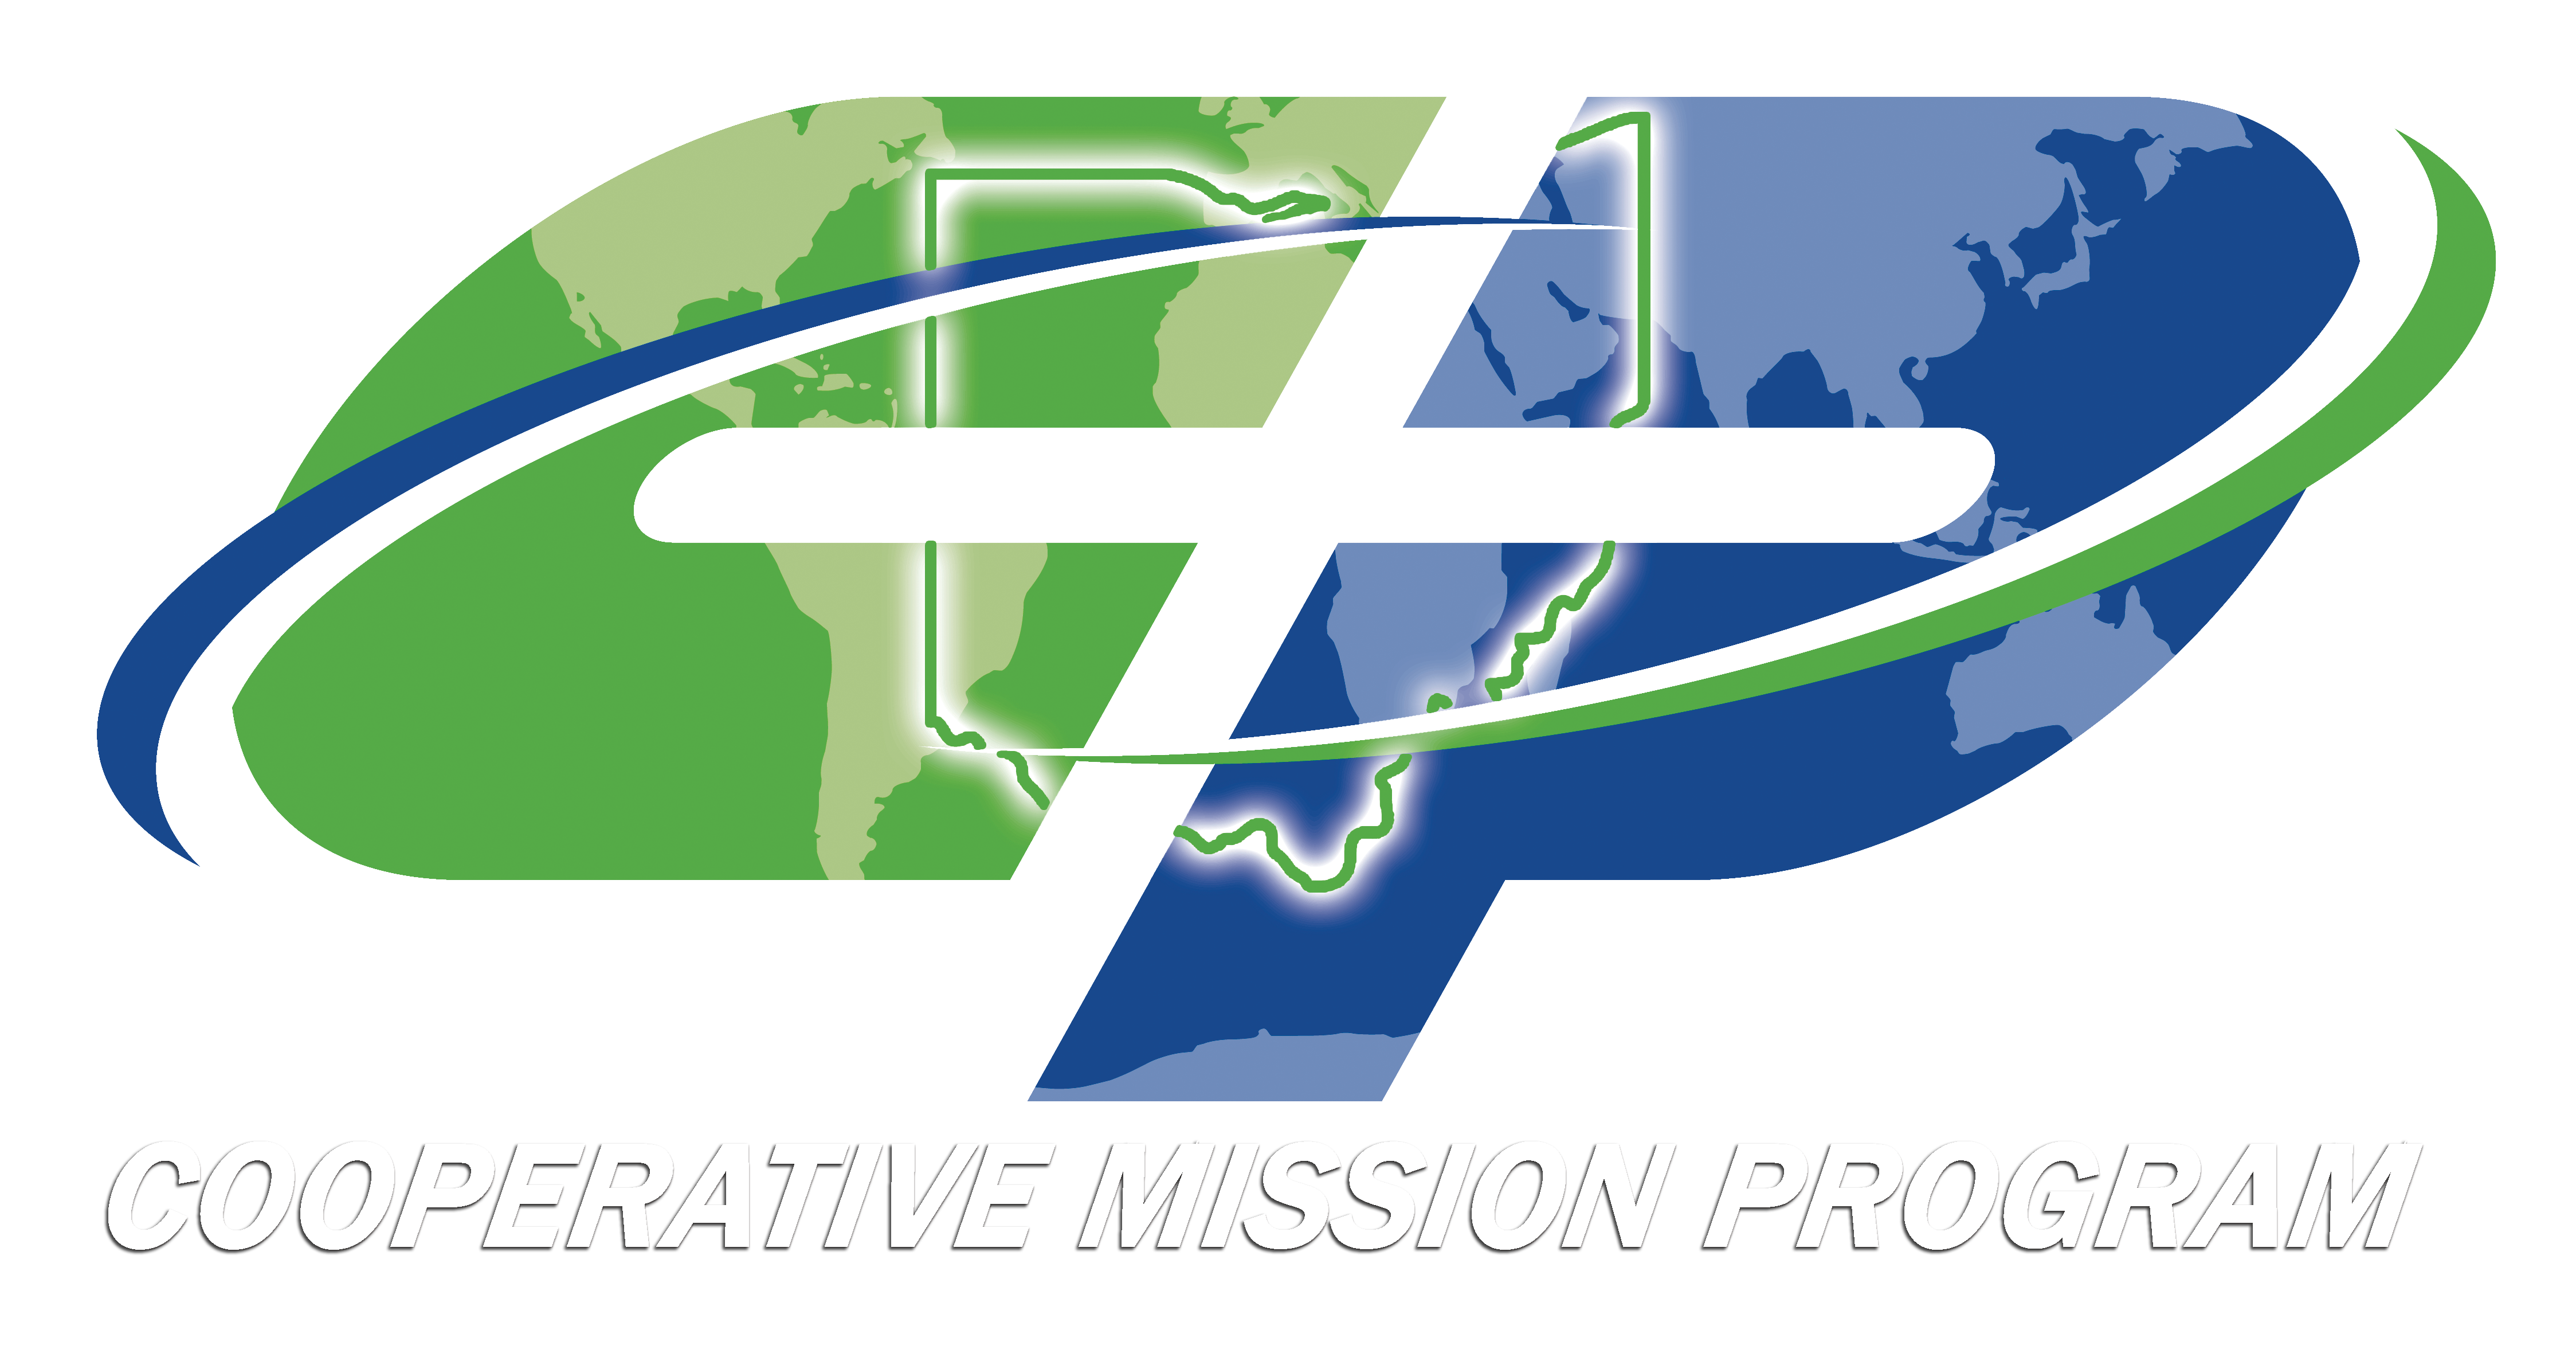 State convention of baptists. Missions clipart common goal